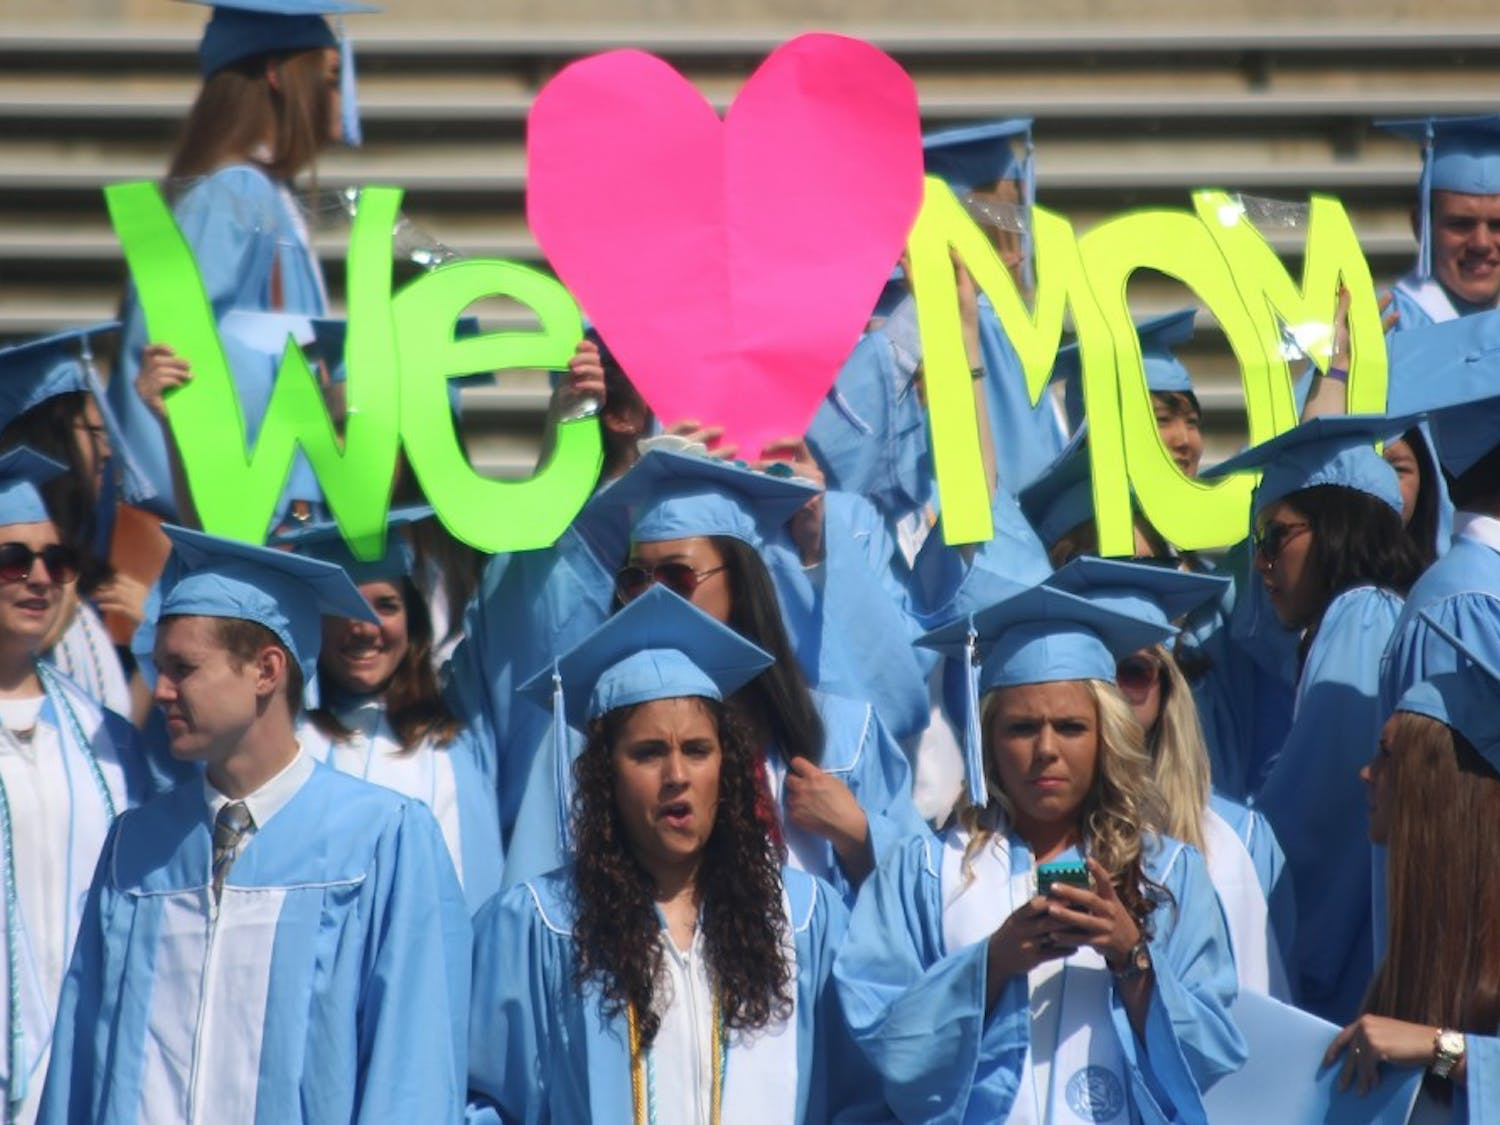 The Class of 2014 gathers for graduation on Mother's Day. Many students display a show of support for all the mothers attending.